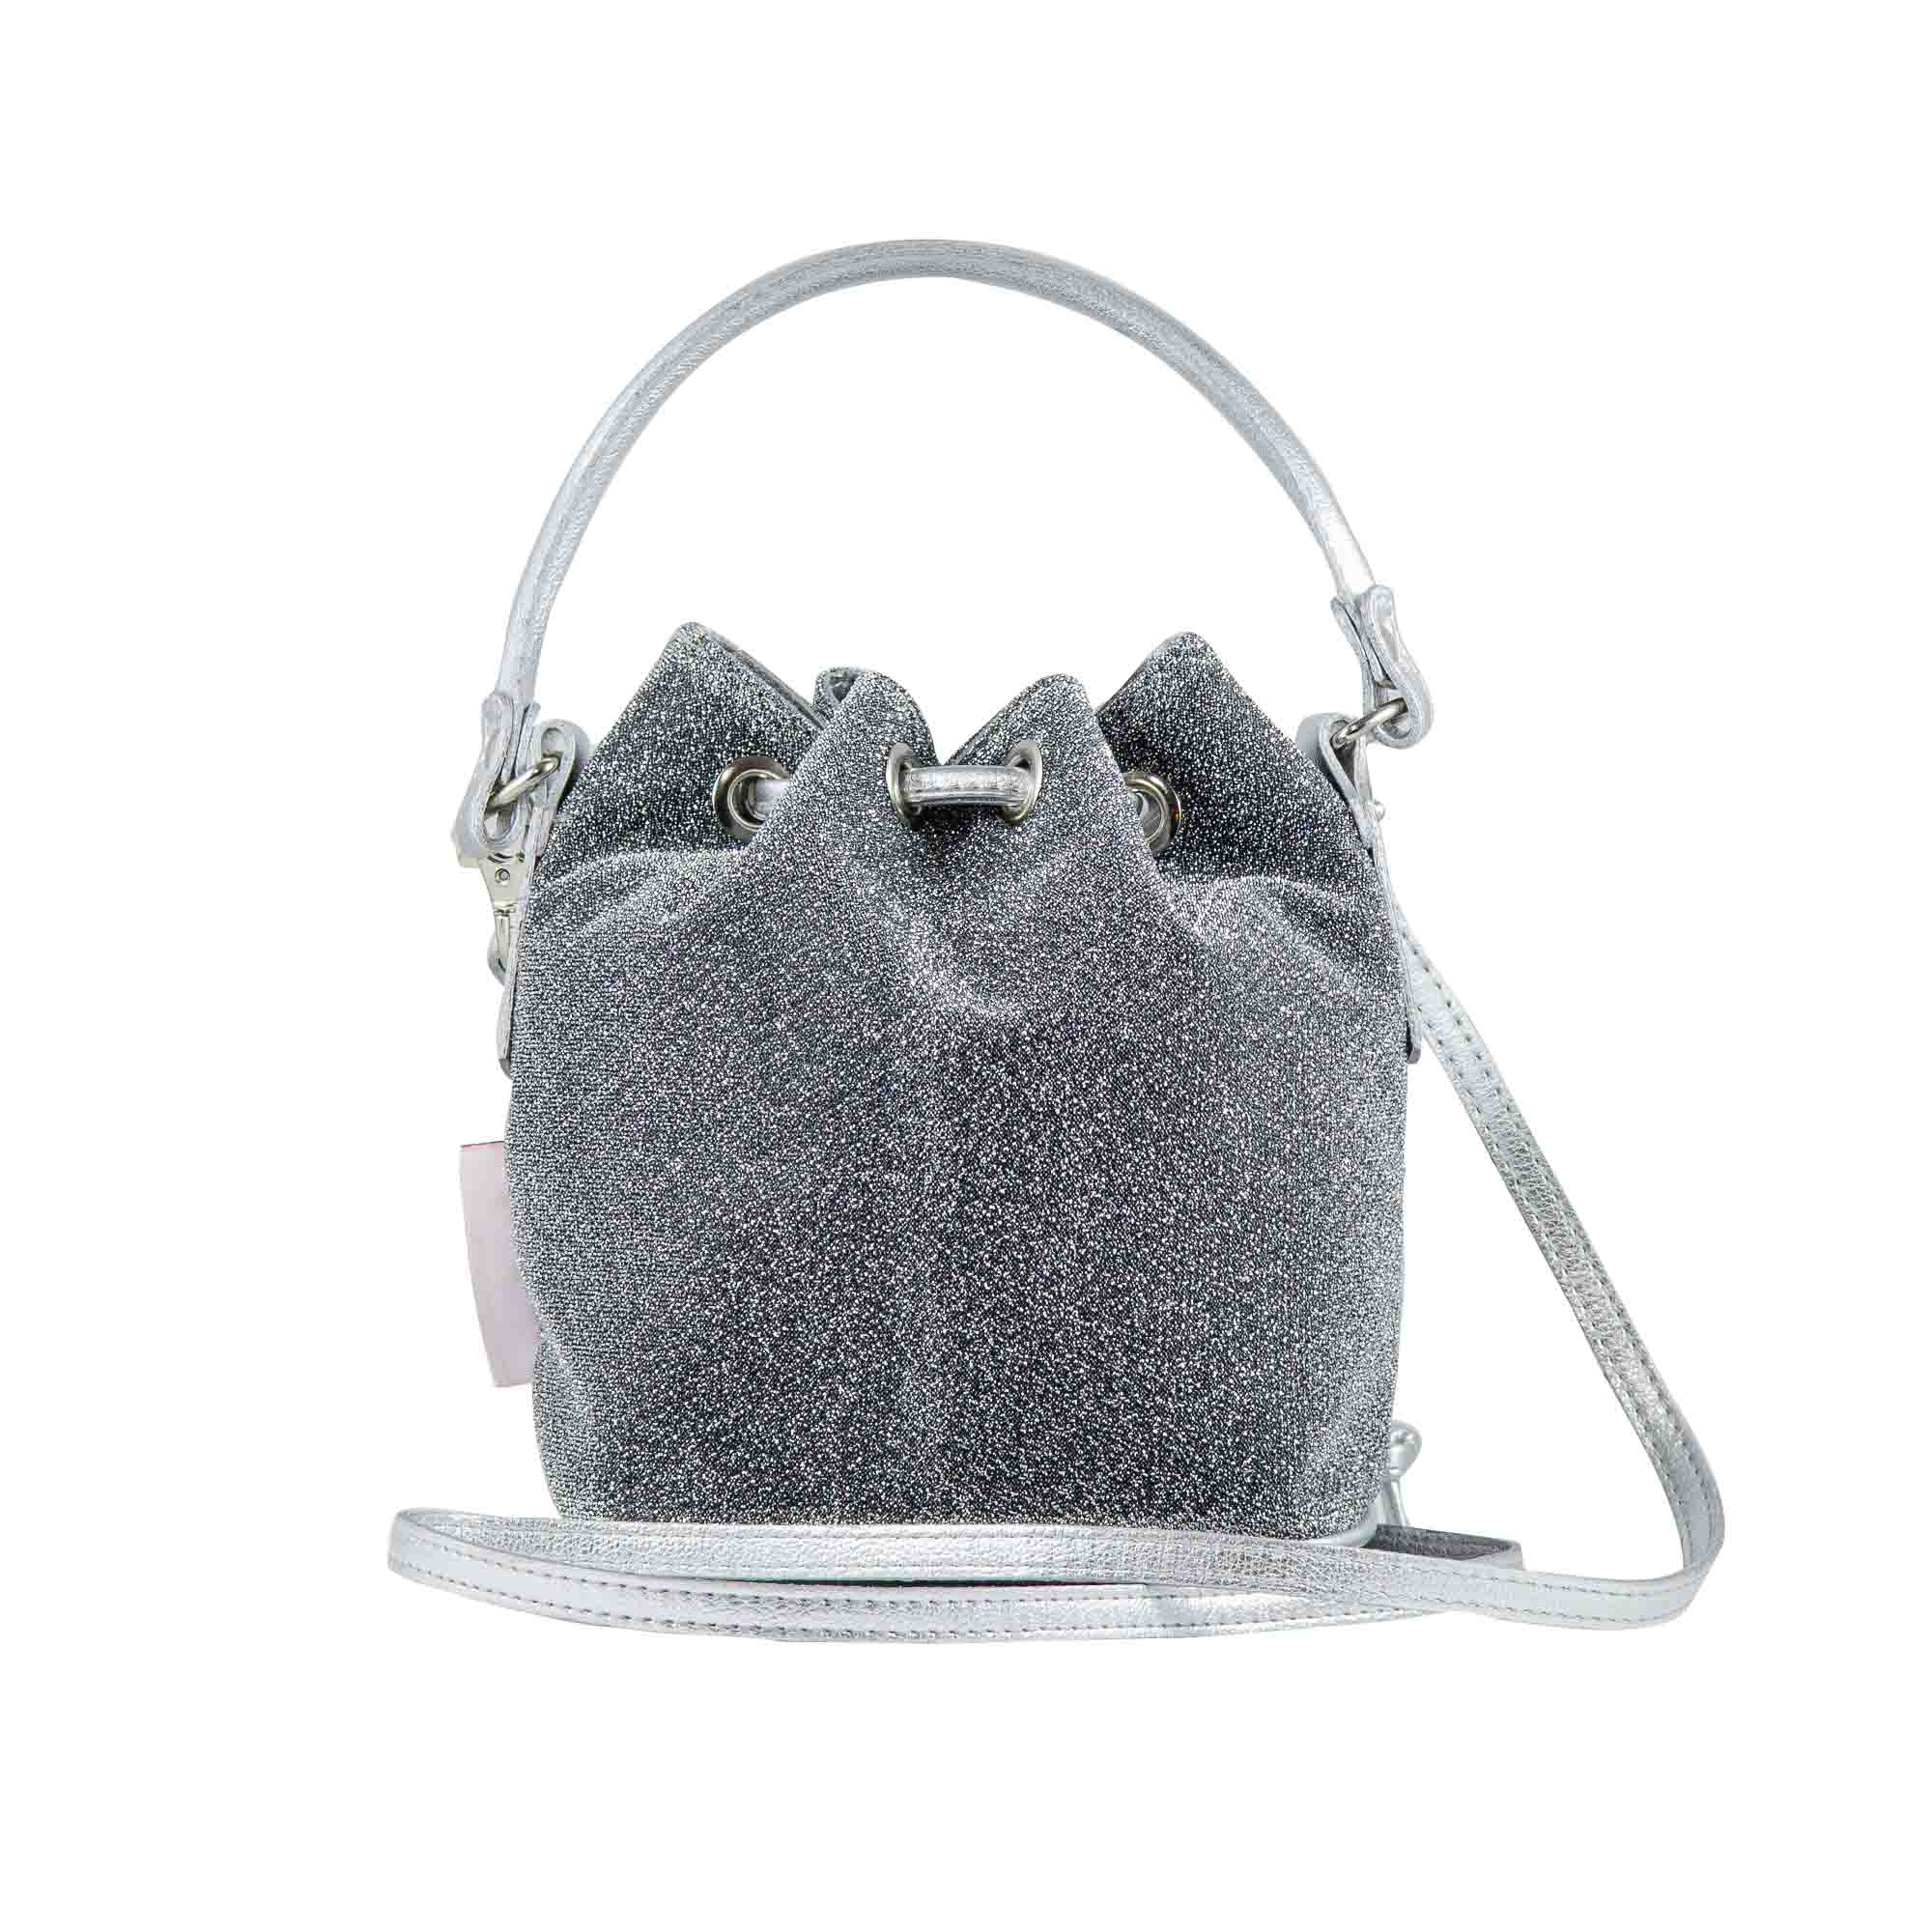 SHOULDER BAG FANTASY SICILIA PRATA